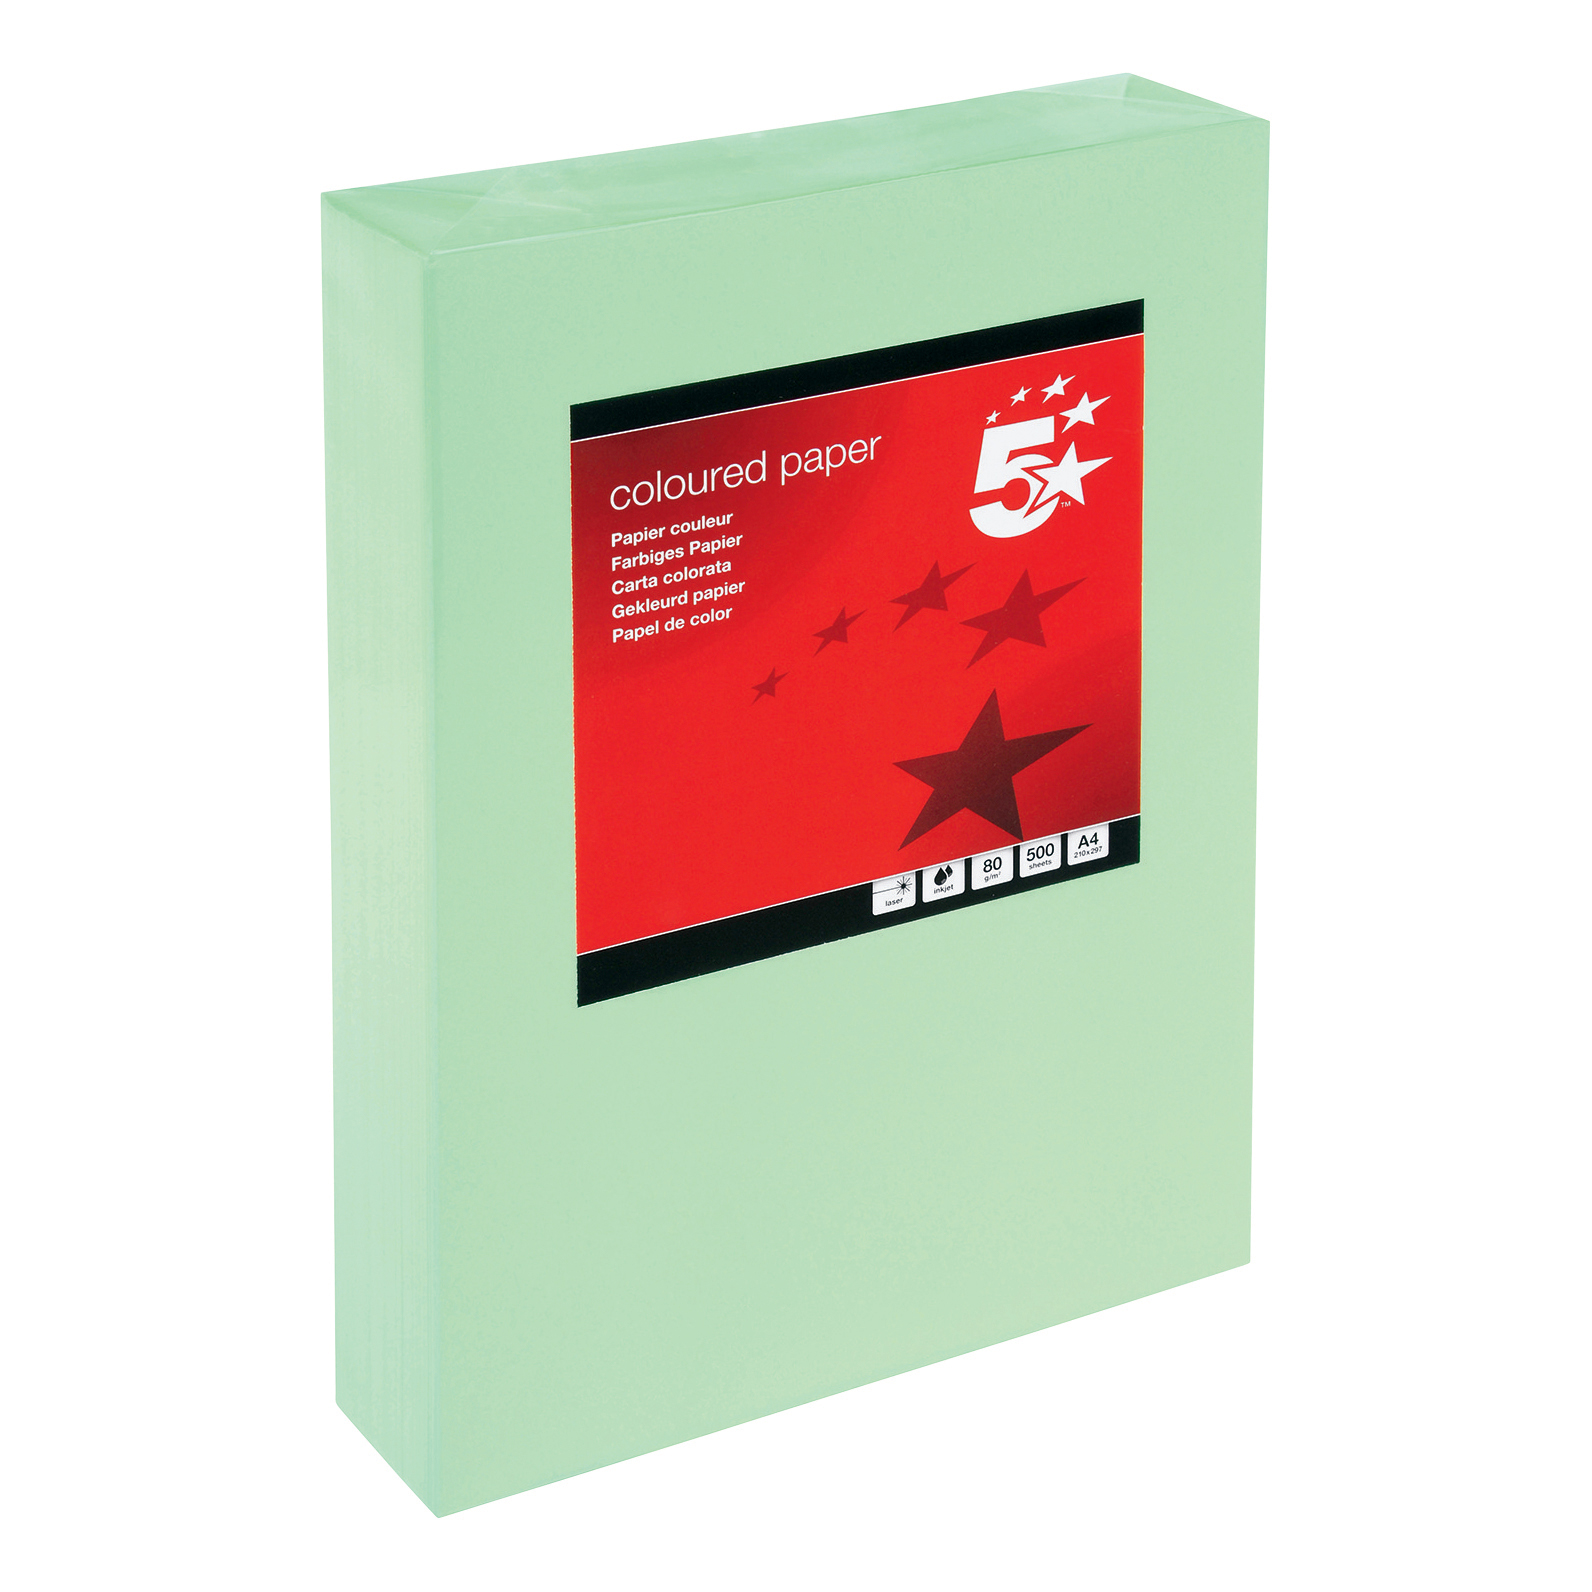 A4 5 Star Office Coloured Copier Paper Multifunctional Ream-Wrapped 80gsm A4 Medium Green 500 Sheets